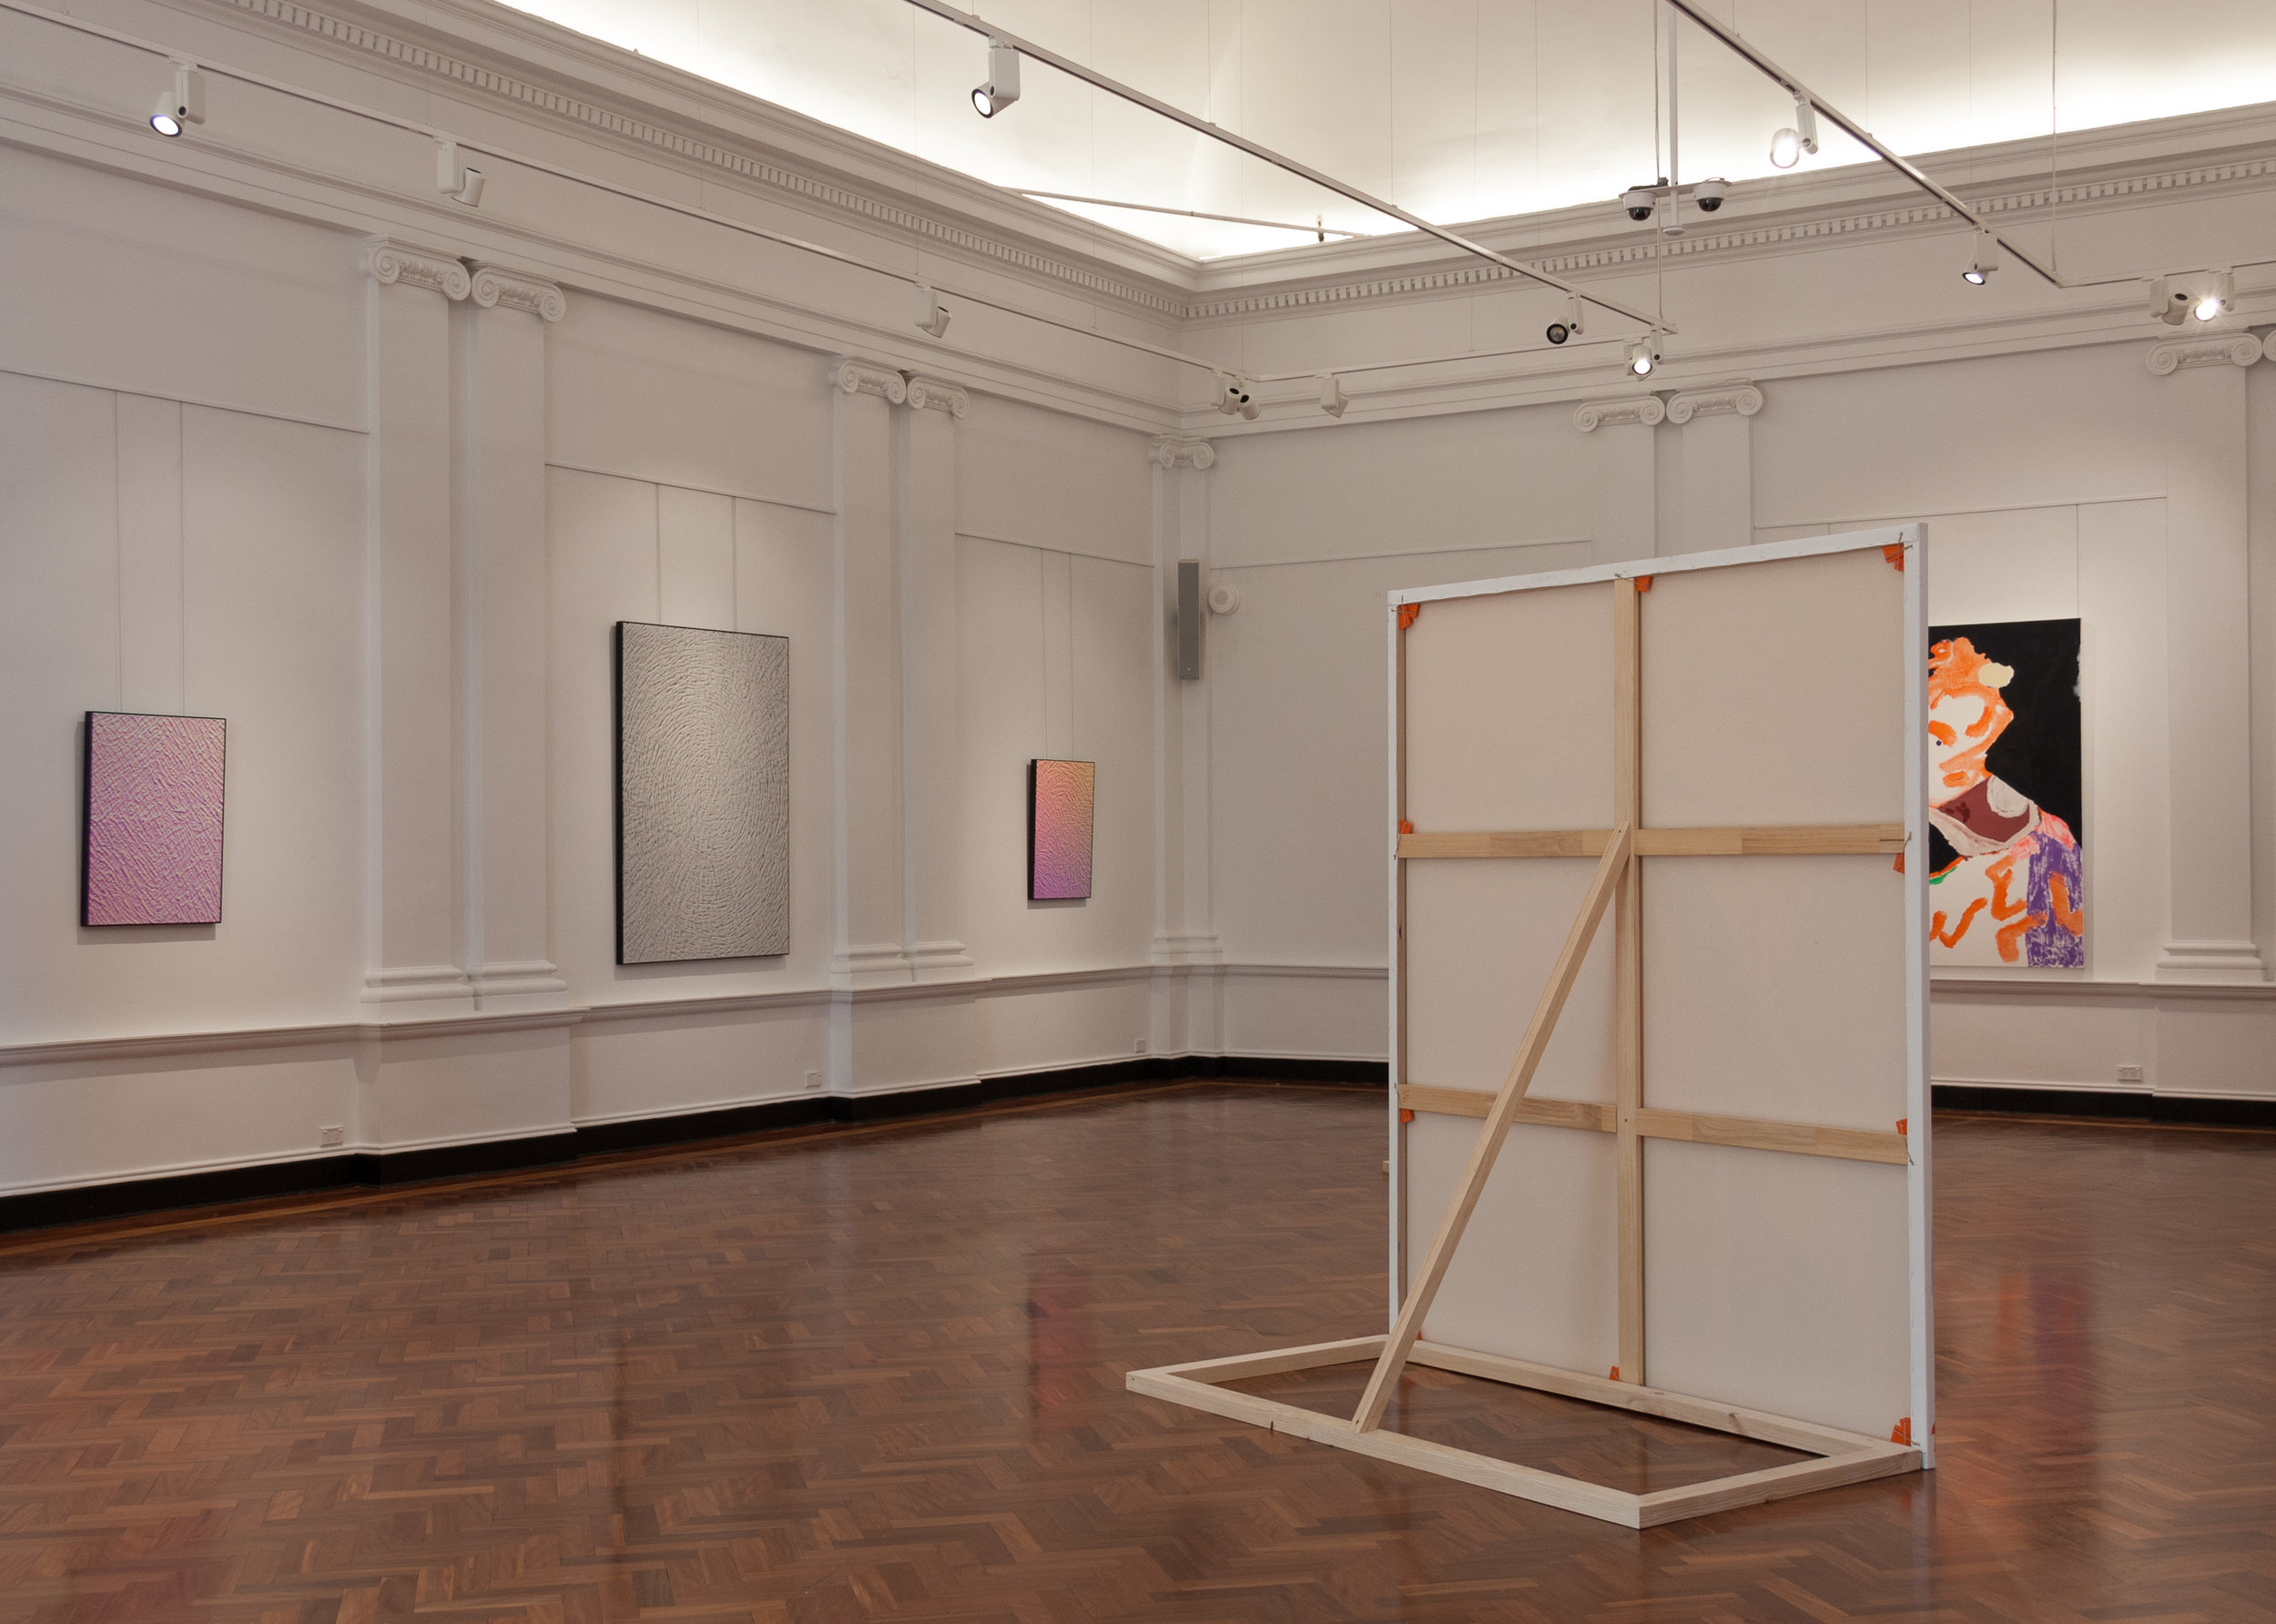 Installation view, STATION Project Space, Sydney